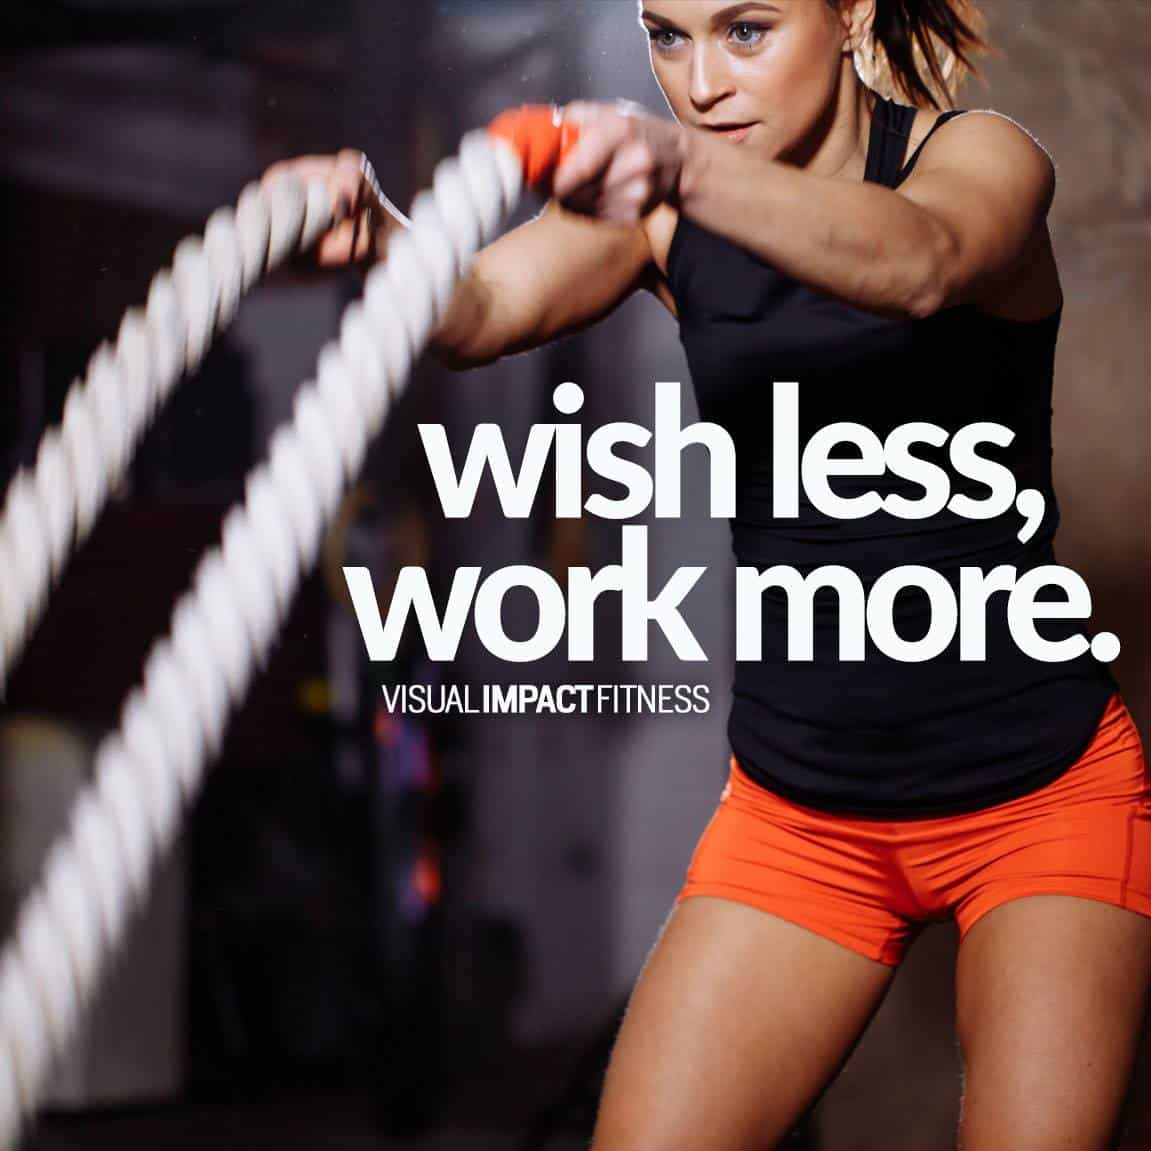 Wish less, work more